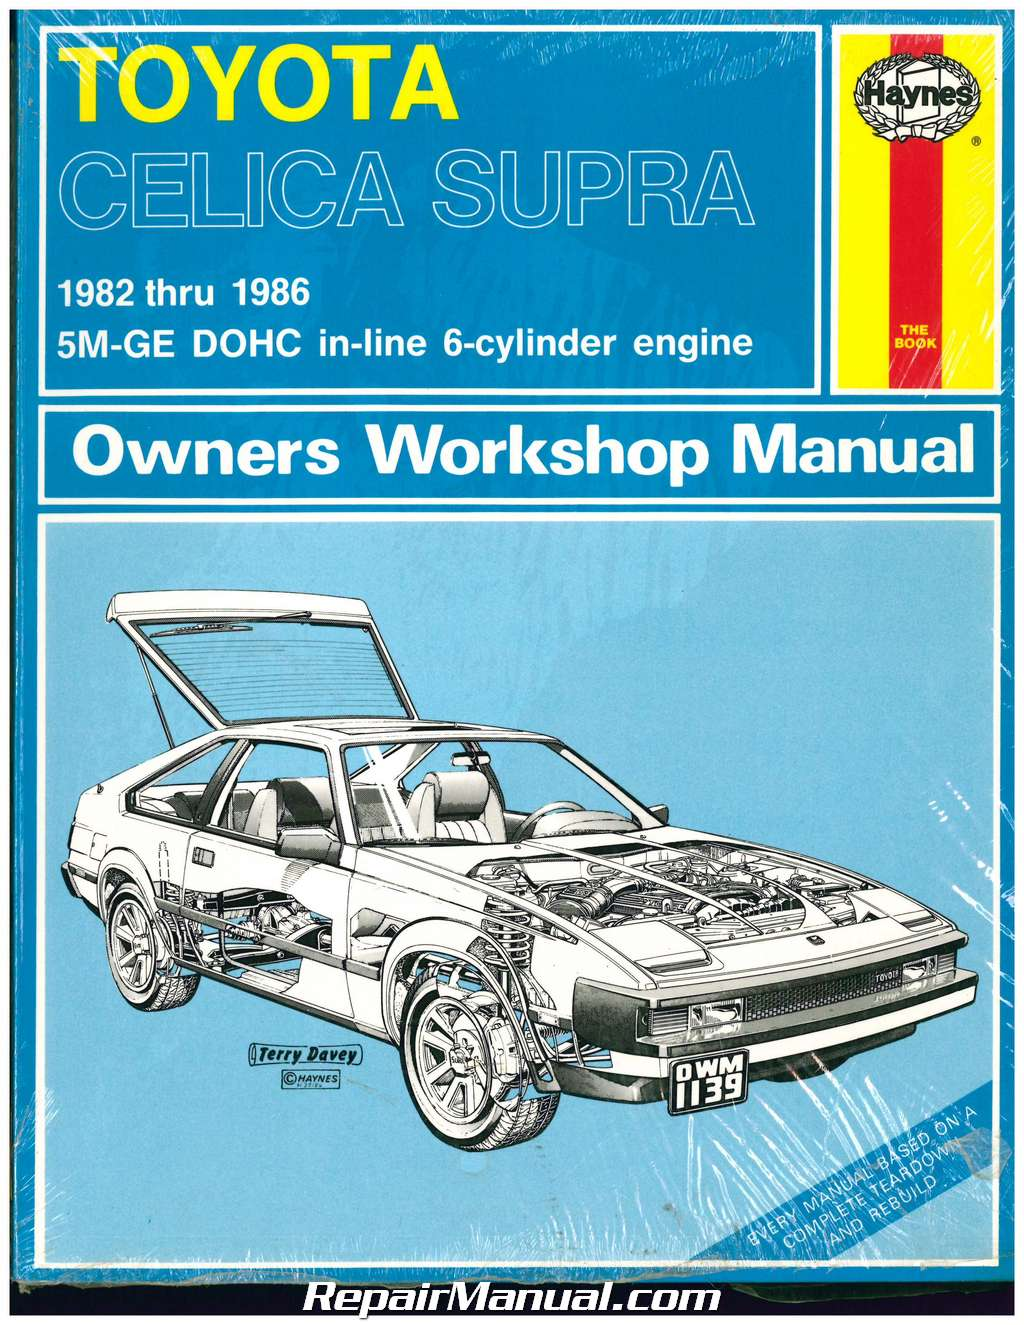 Haynes Toyota Celica Supra 1982 1986 Auto Repair Manual Wiring Diagram 1984